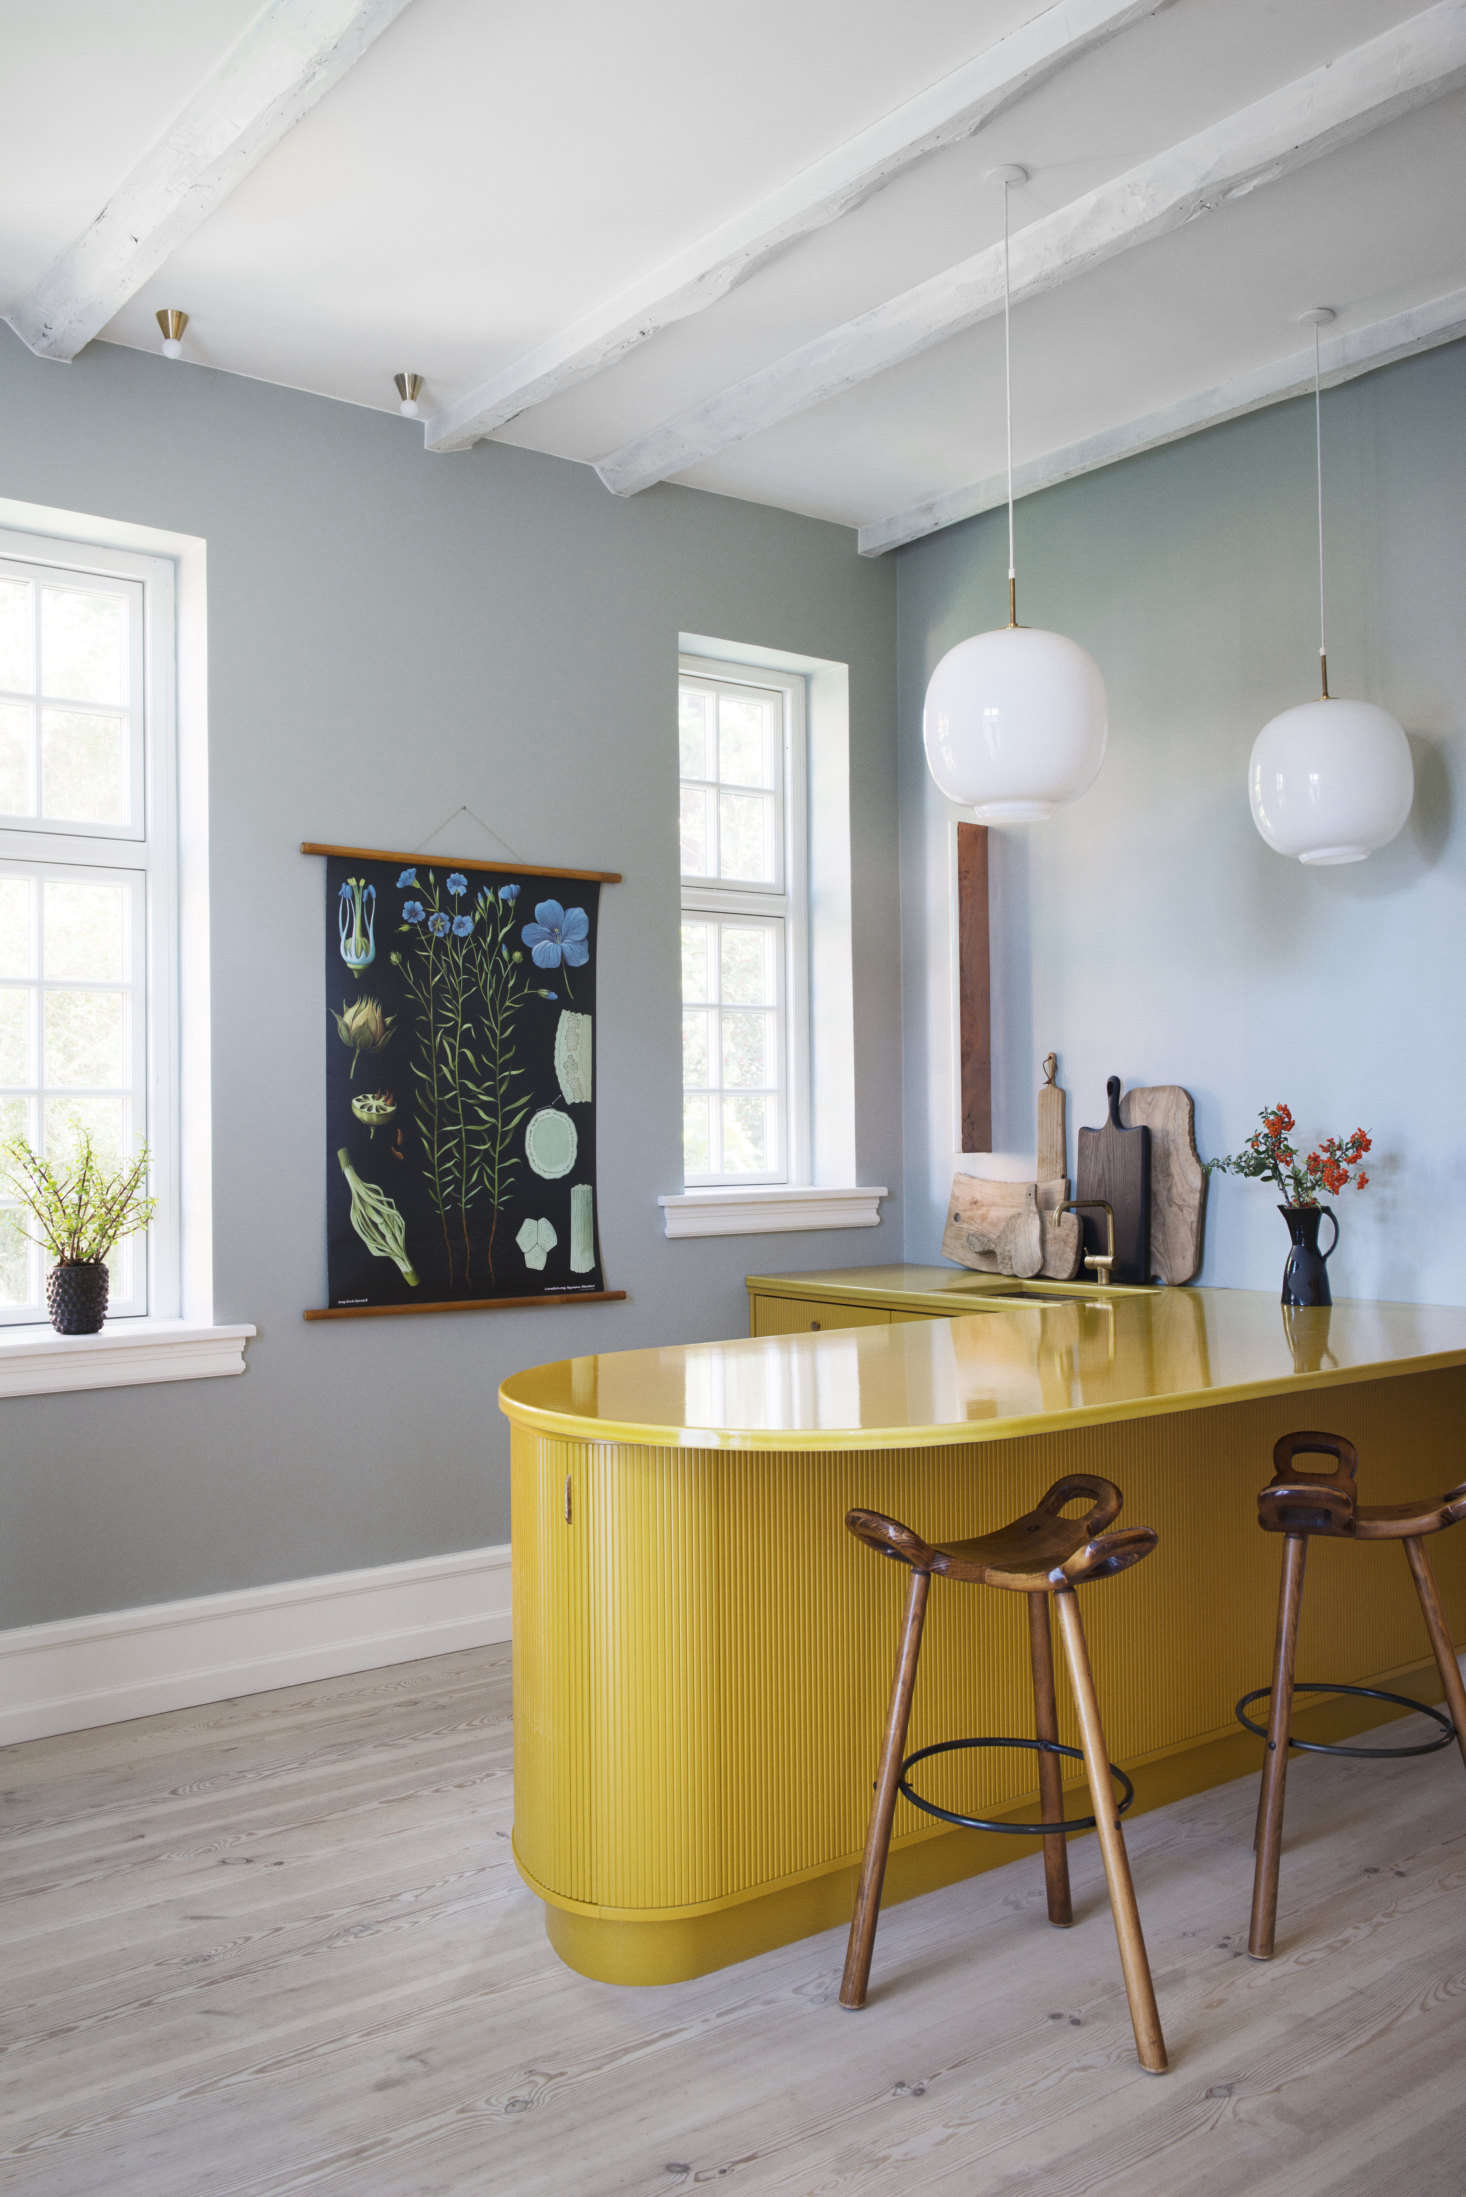 Master cabinetmakers KBH of Copenhagen outfitted this kitchen in Frederiksberg, Denmark, with a shiny sink and breakfast counter the color of curry. The cabinets are oak; the counter is glazed lava stone. Photograph by Gyrithe Lemche.